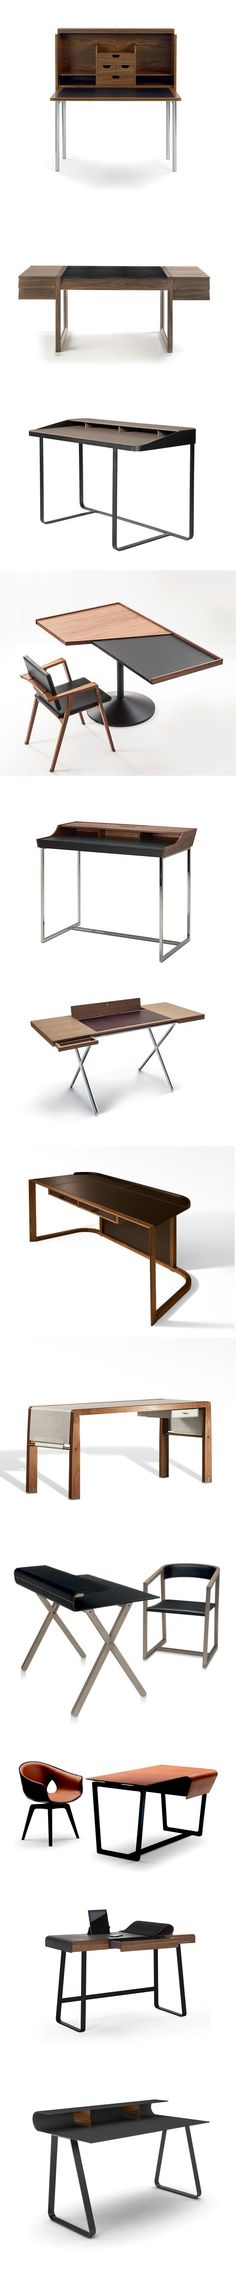 Feel a Dash of Old Time Luxury With Leather Writing Desks for Your Home or Office